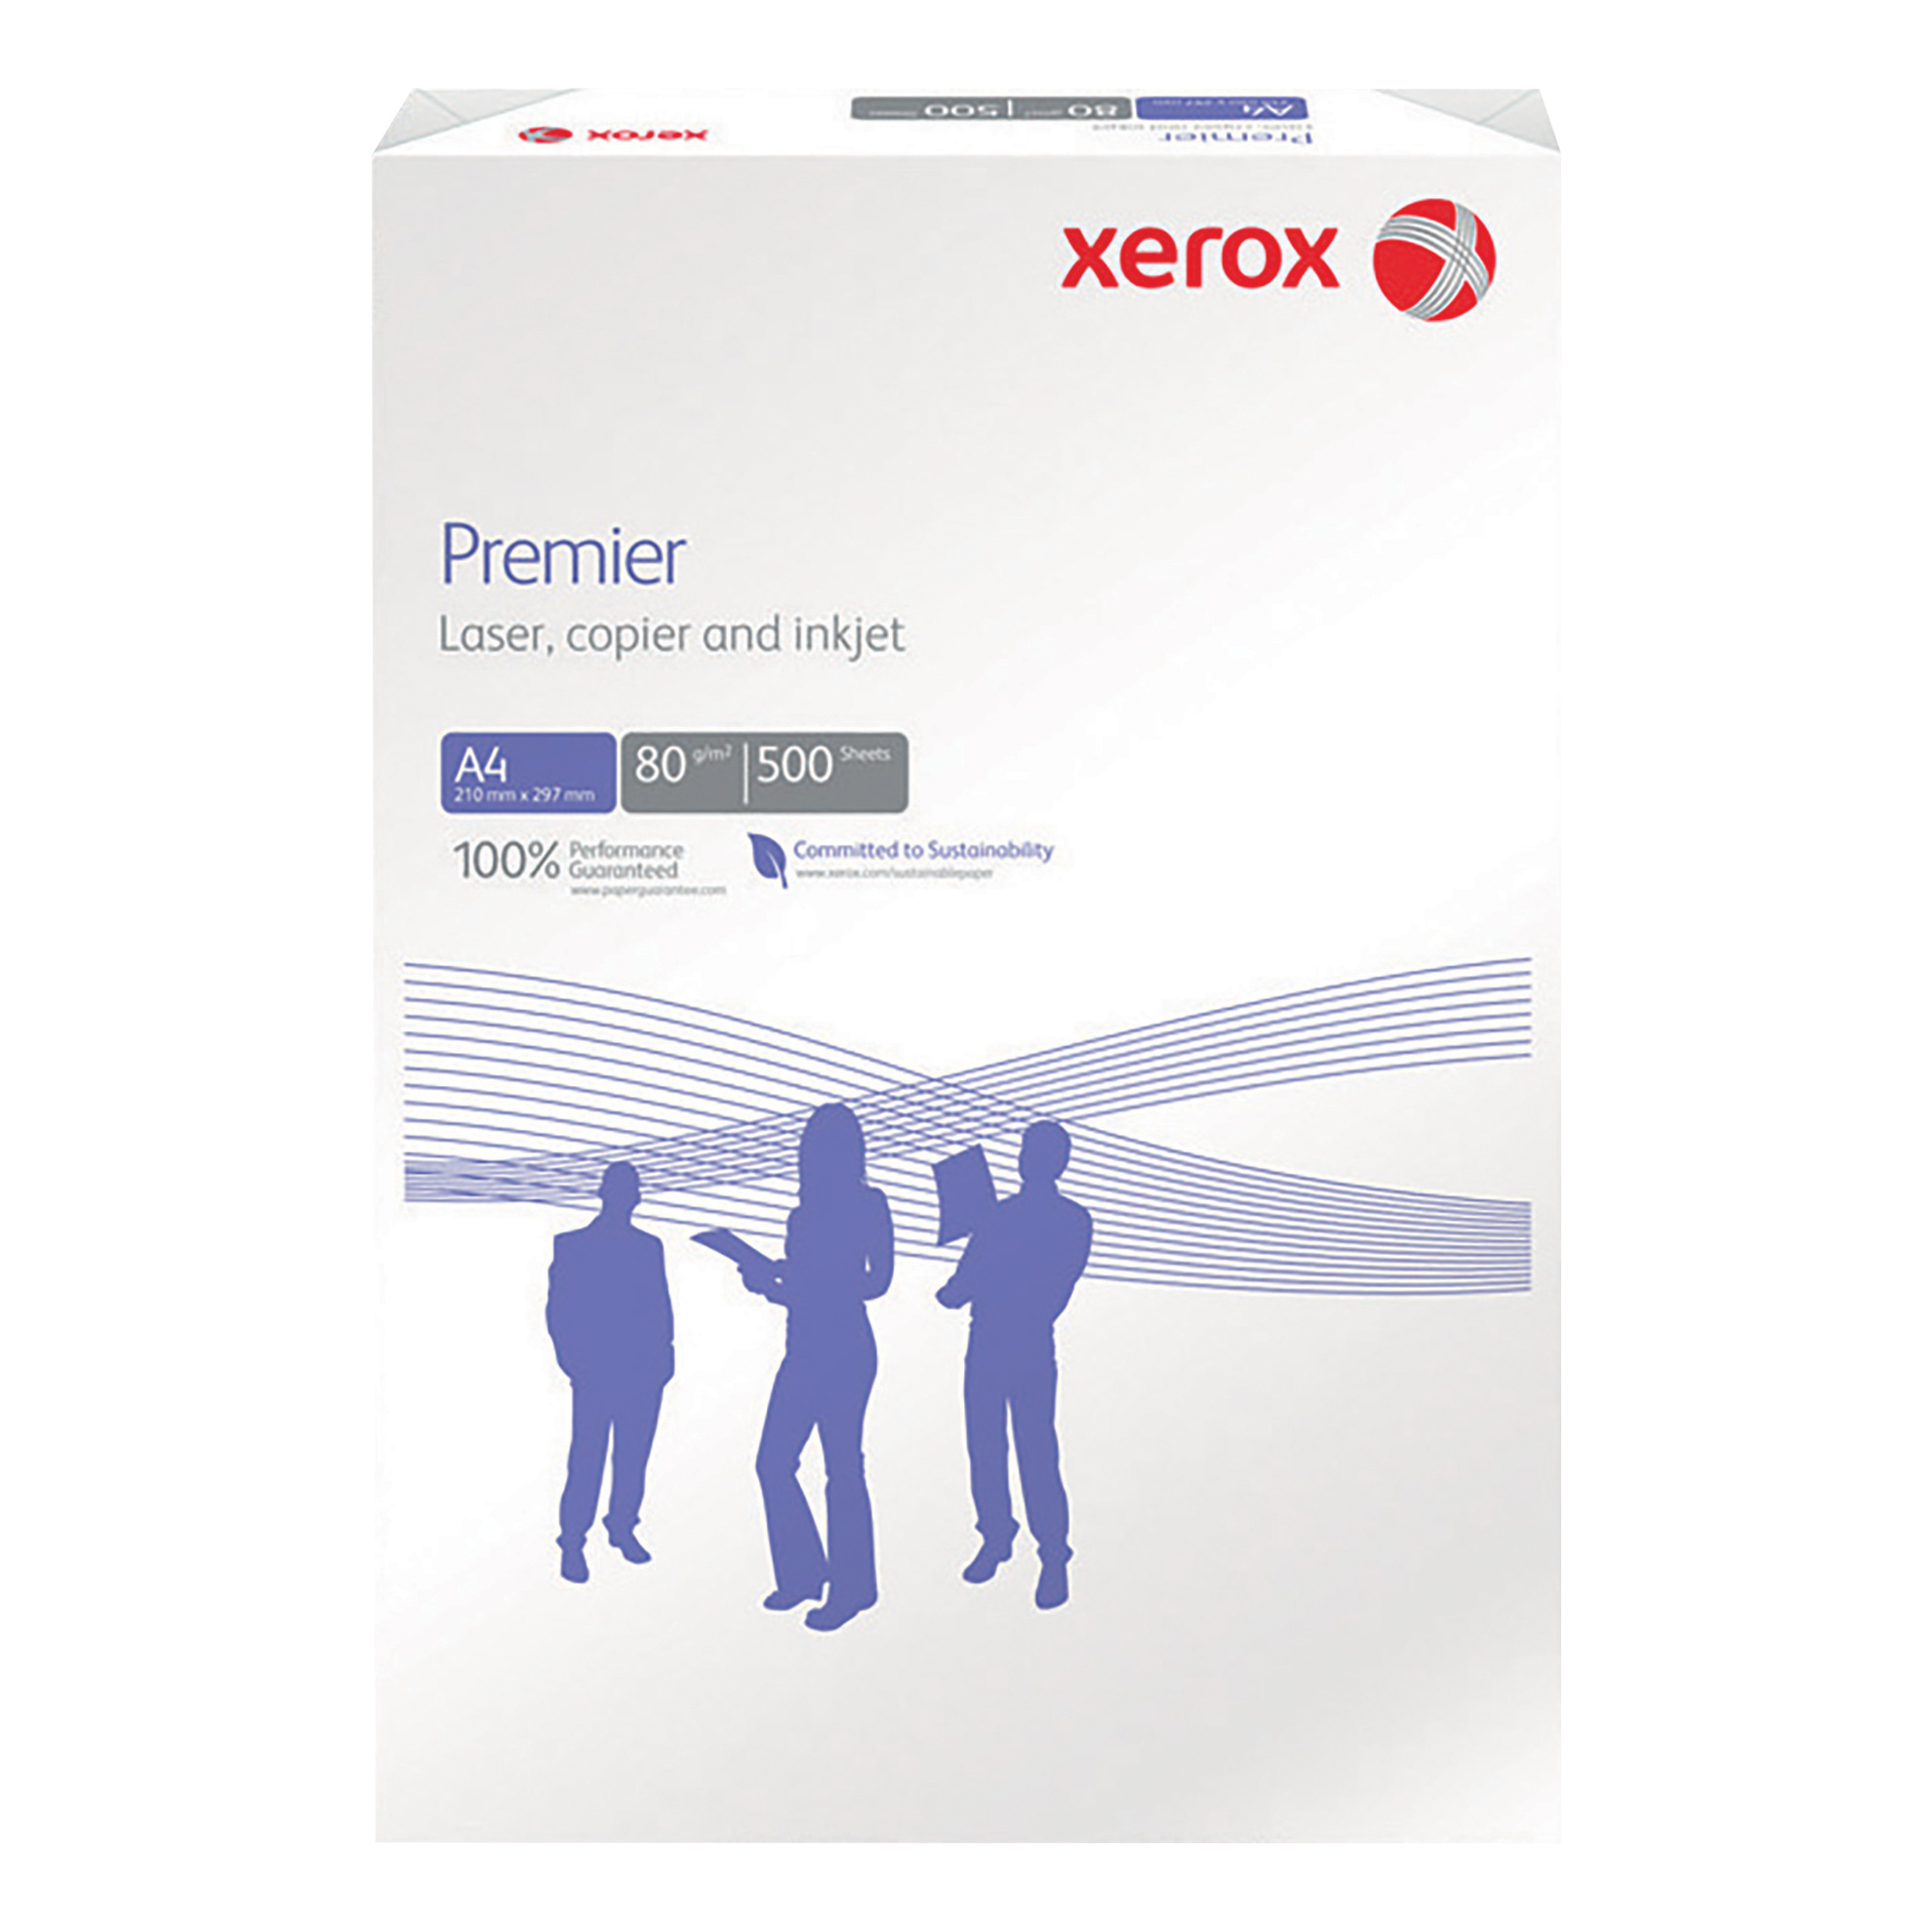 Xerox Premier Copier Paper Multifunctional Ream-Wrapped 80gsm A4 White Ref 62320 500 Sheets